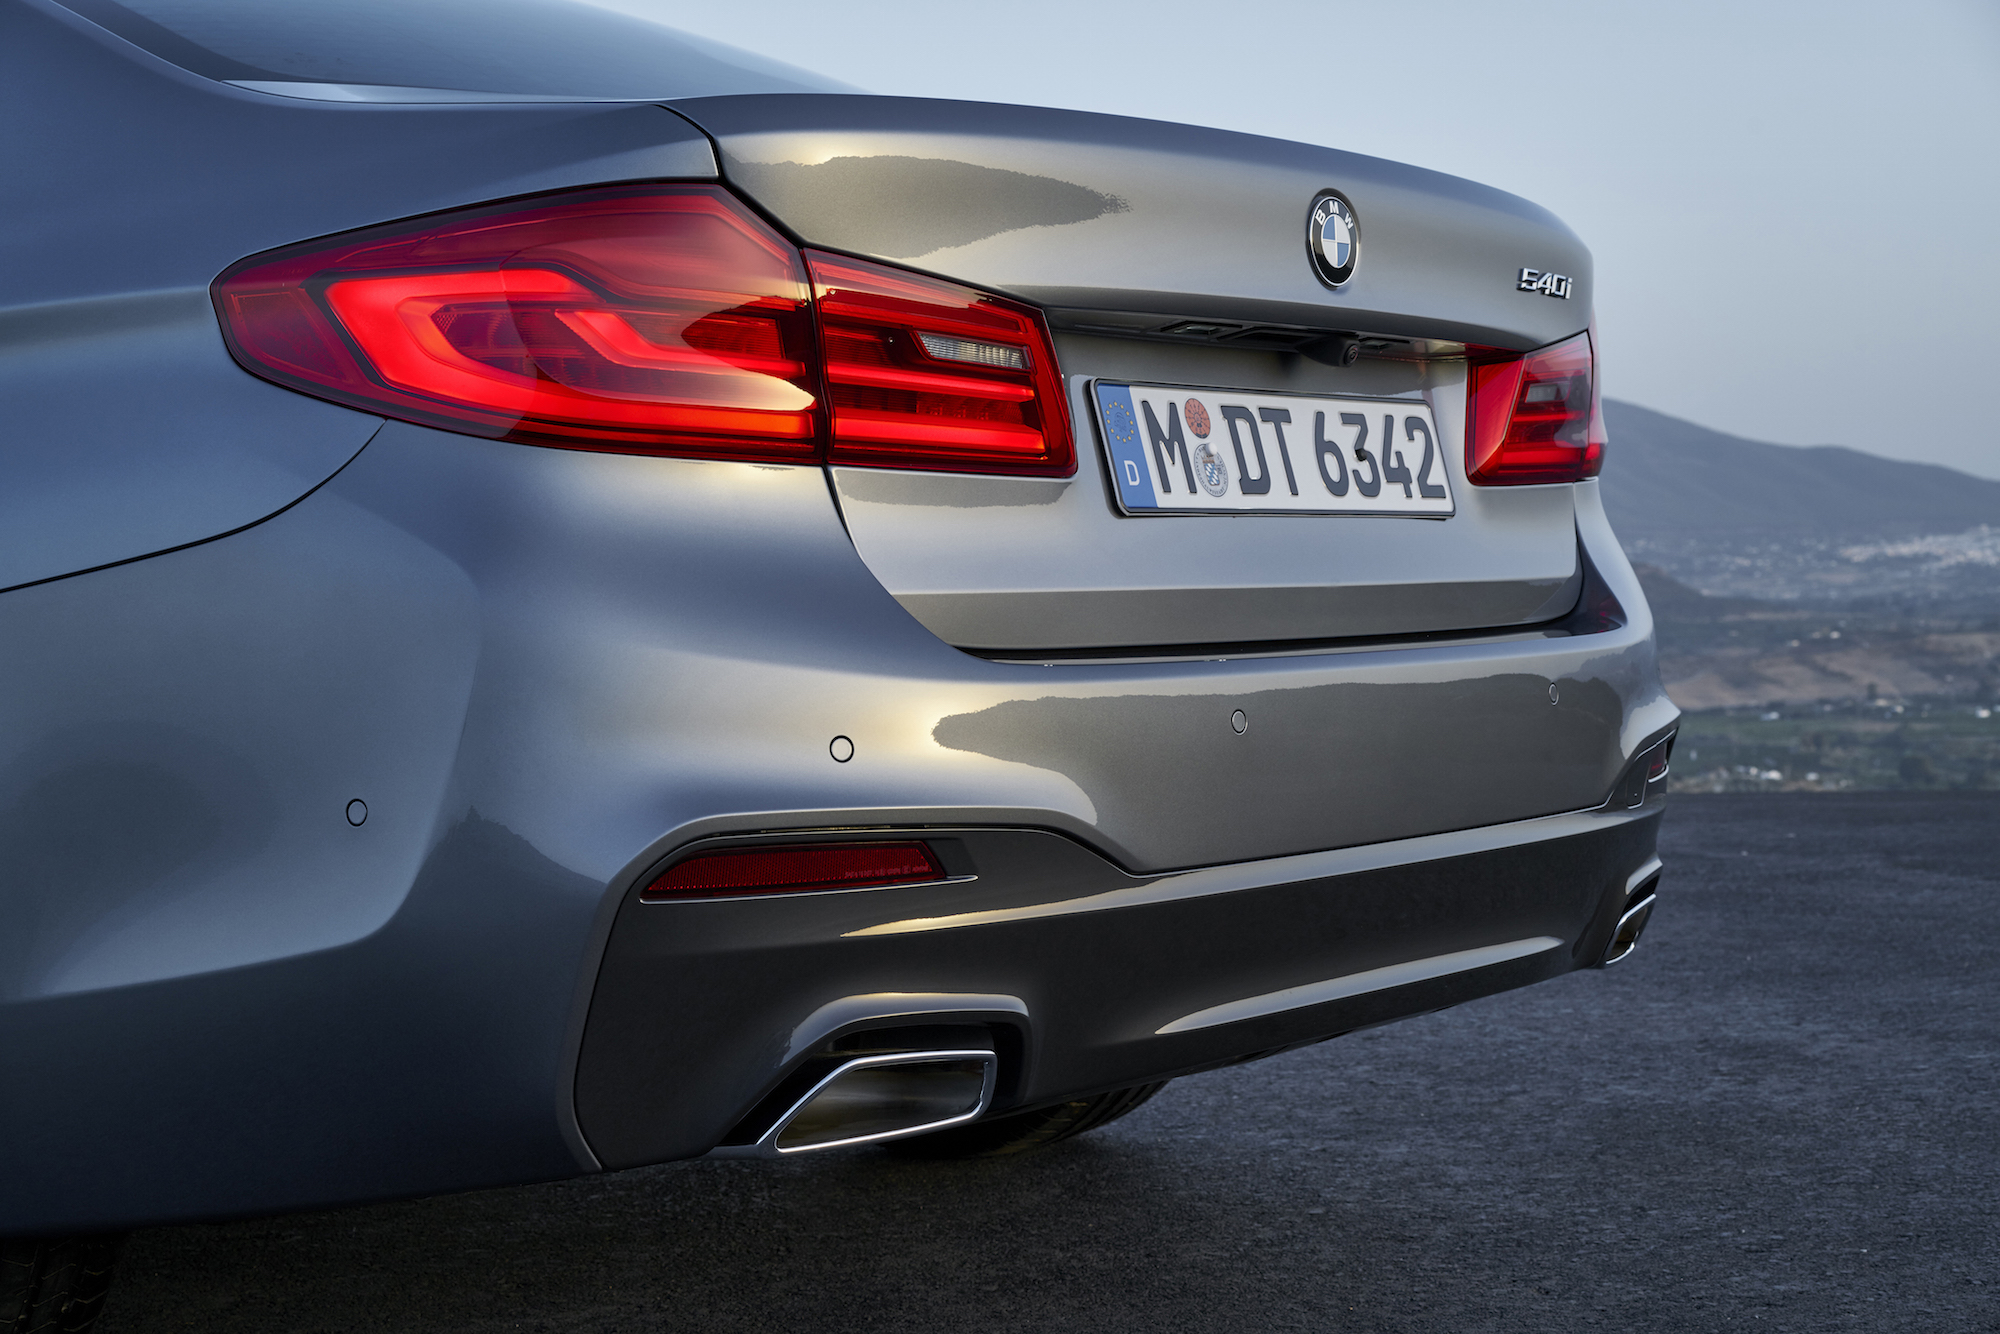 first look: 2017 bmw 5 series sedan | canadian auto review